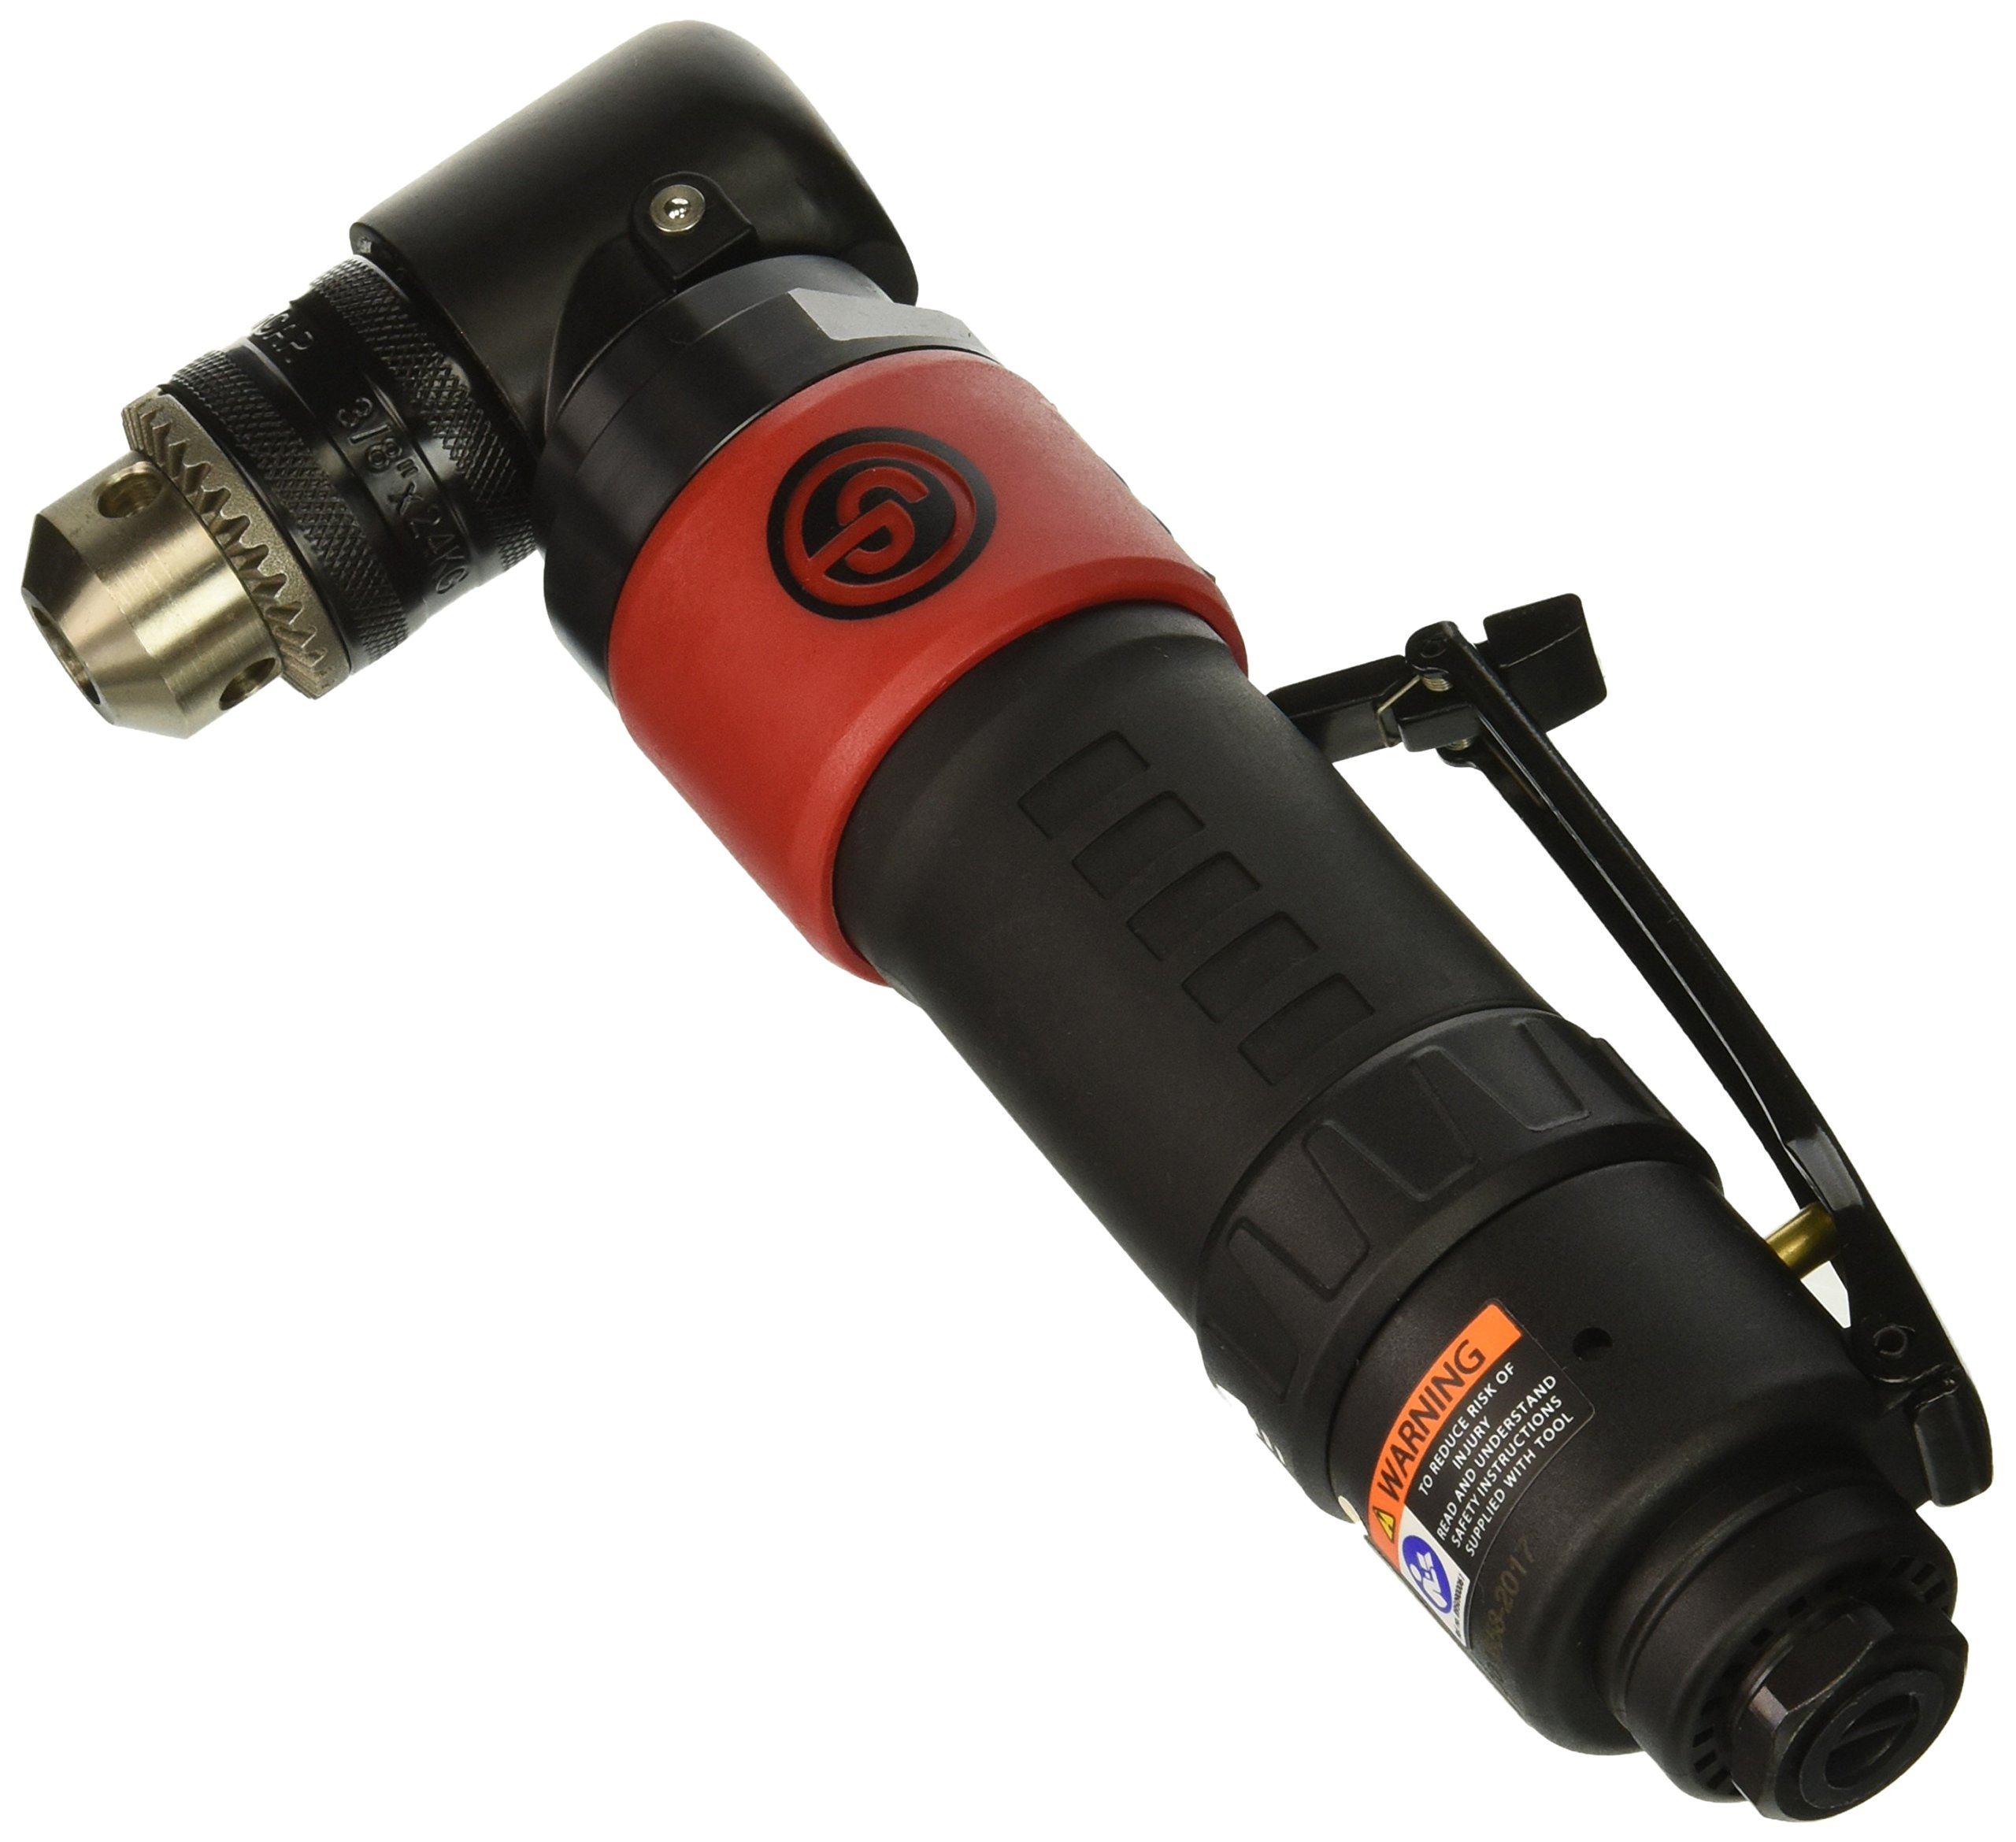 Chicago Pneumatic 8941008790 CP879C Angle Drill Rev 3/8'' Key by Chicago Pneumatic